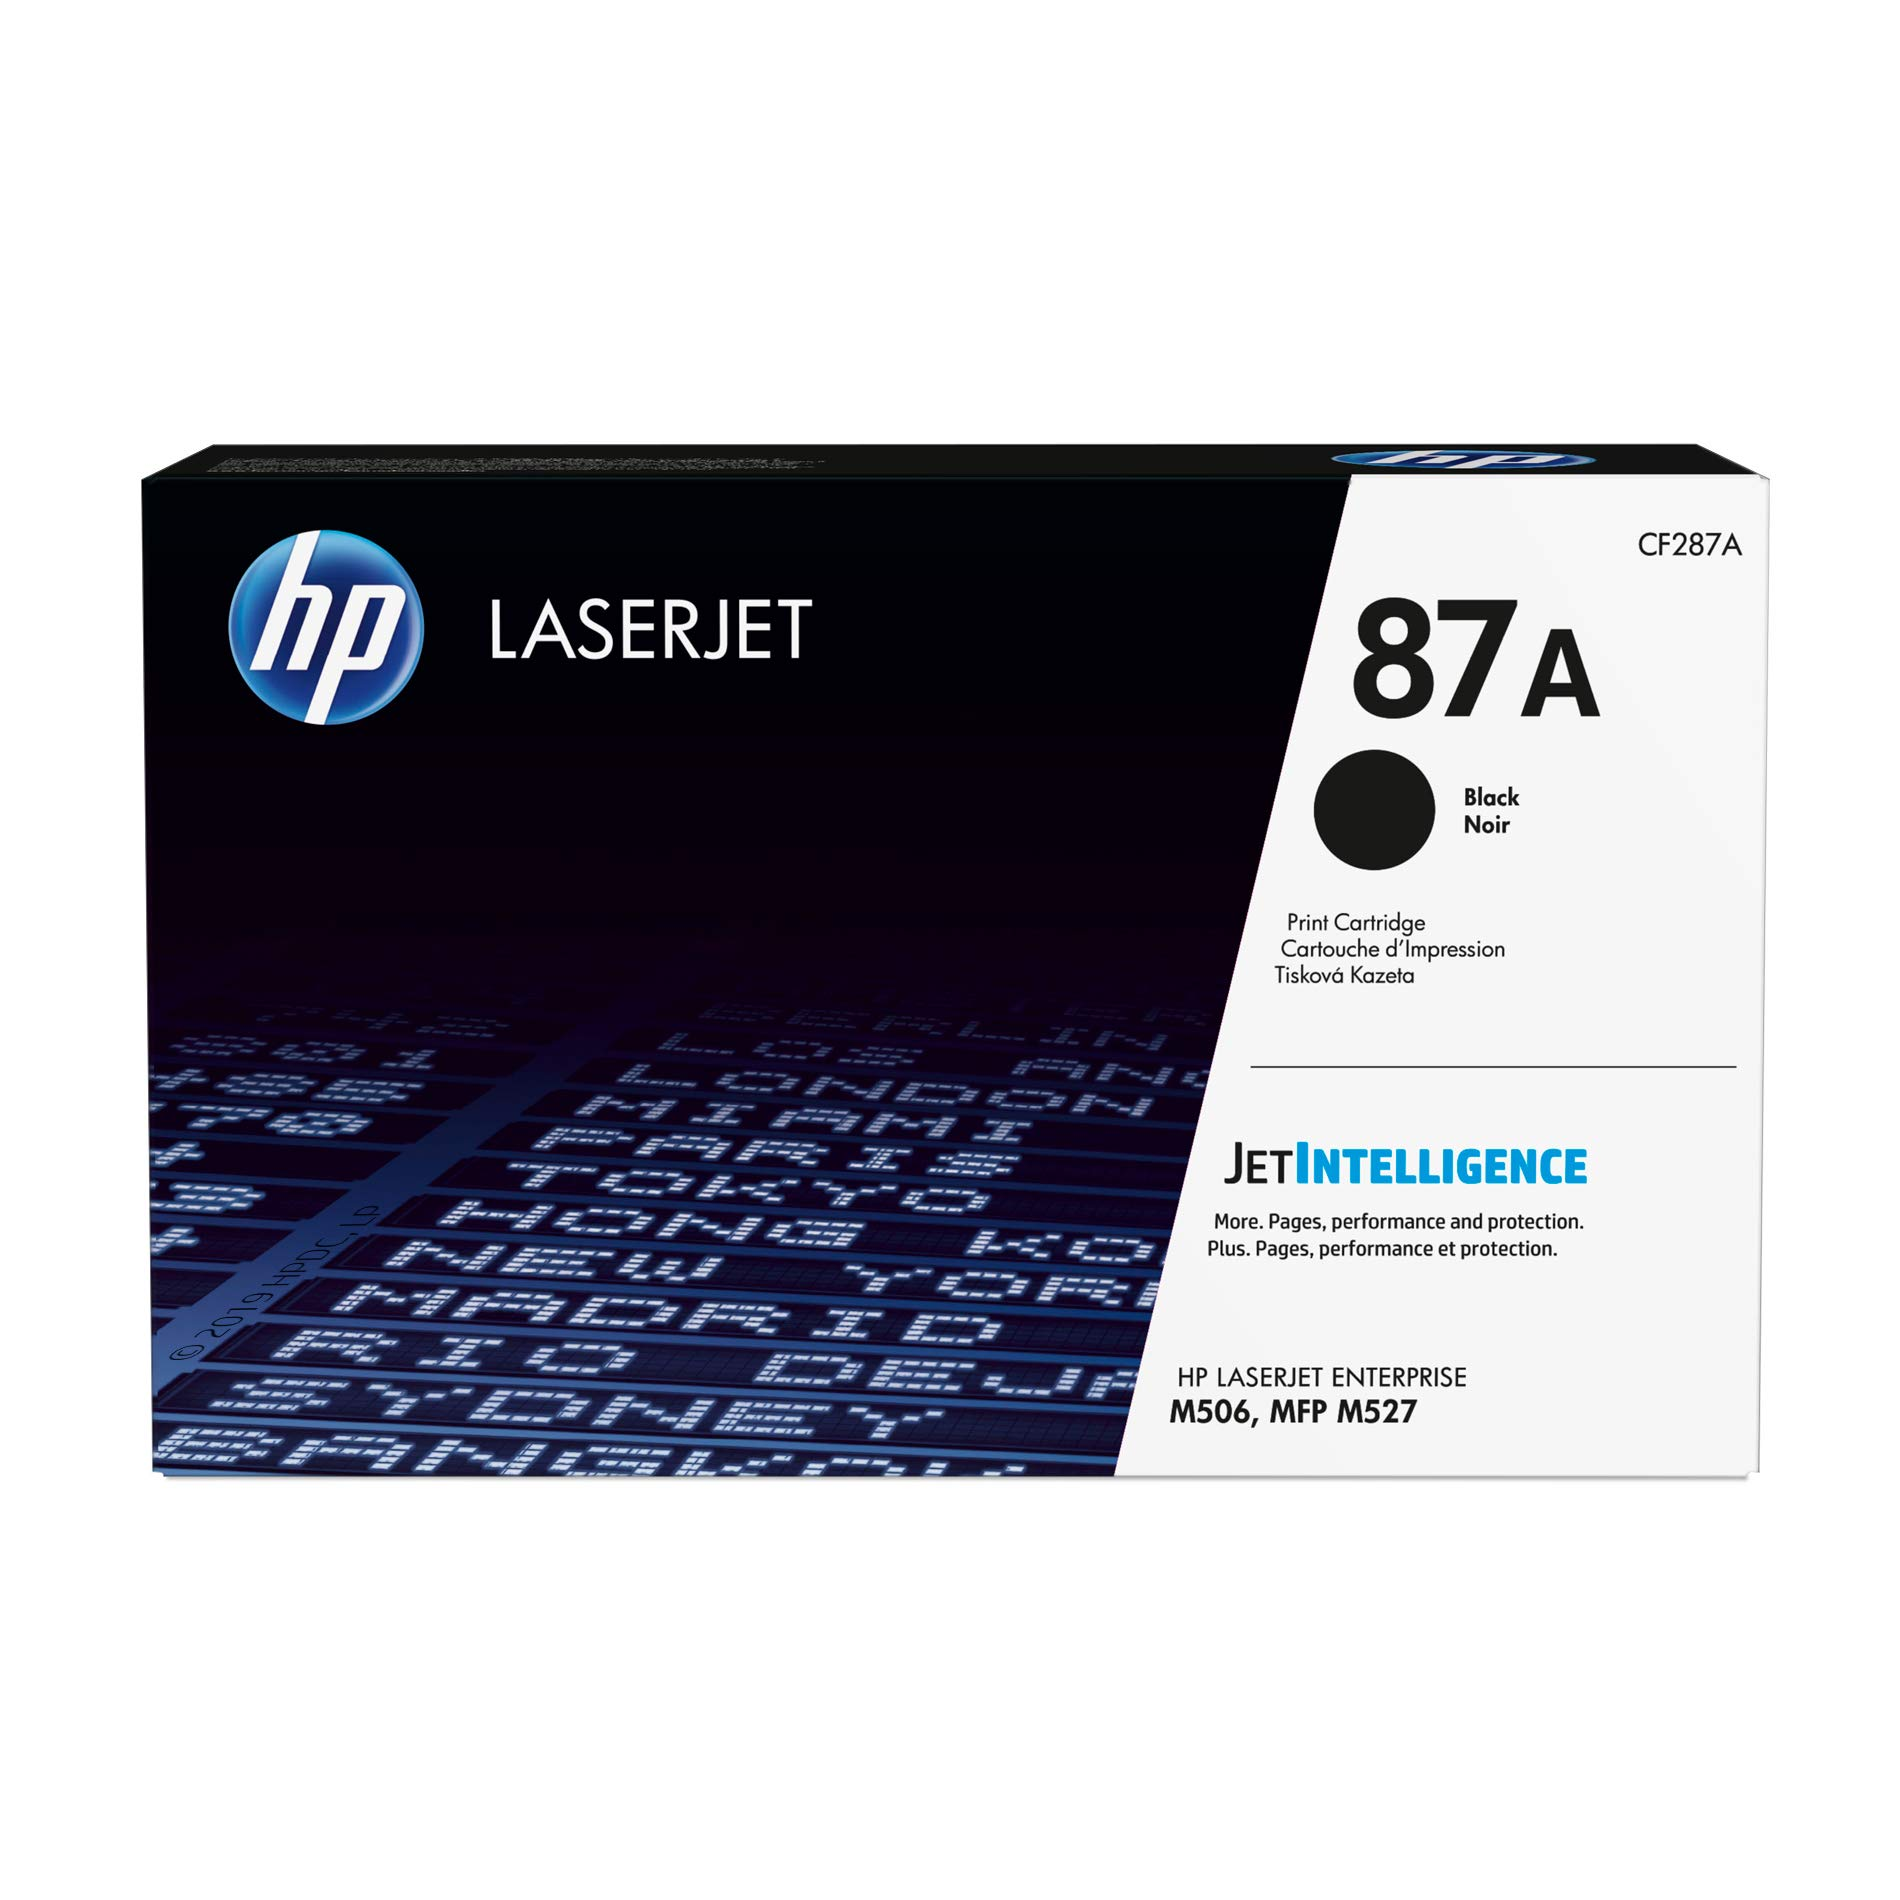 HP 87A (CF287A) Black Toner Cartridge for HP LaserJet Enterprise M527 M506 M501